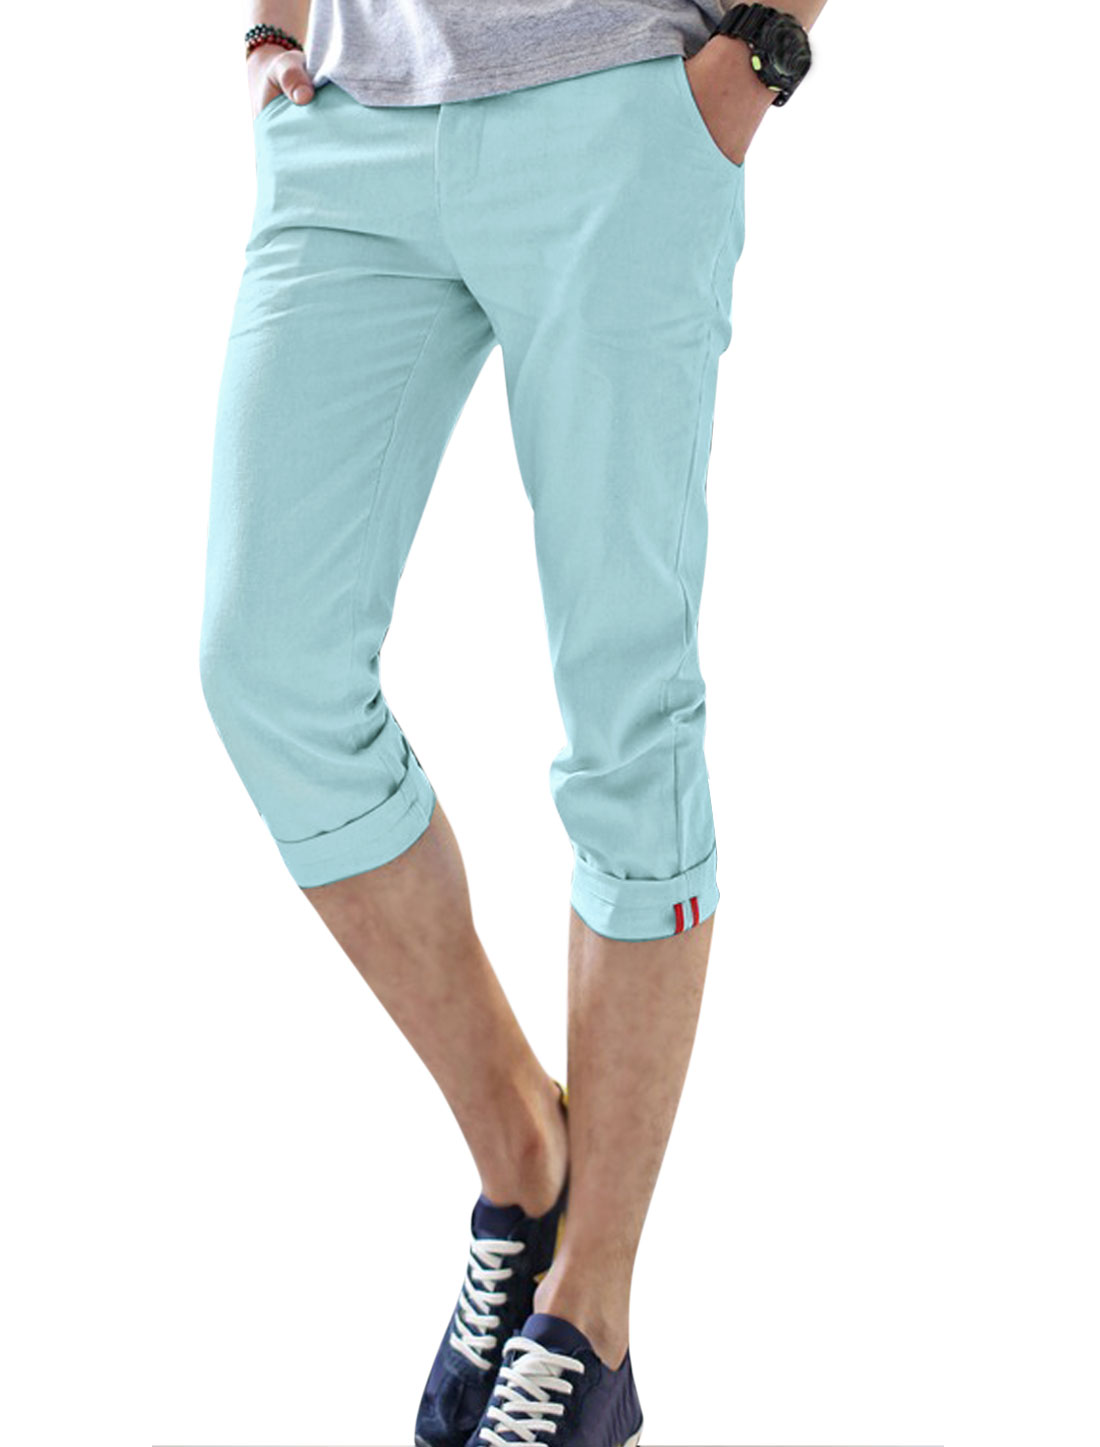 Men Button Closed Welt Pockets Back Slim Fit Linen Capris Baby Blue W30